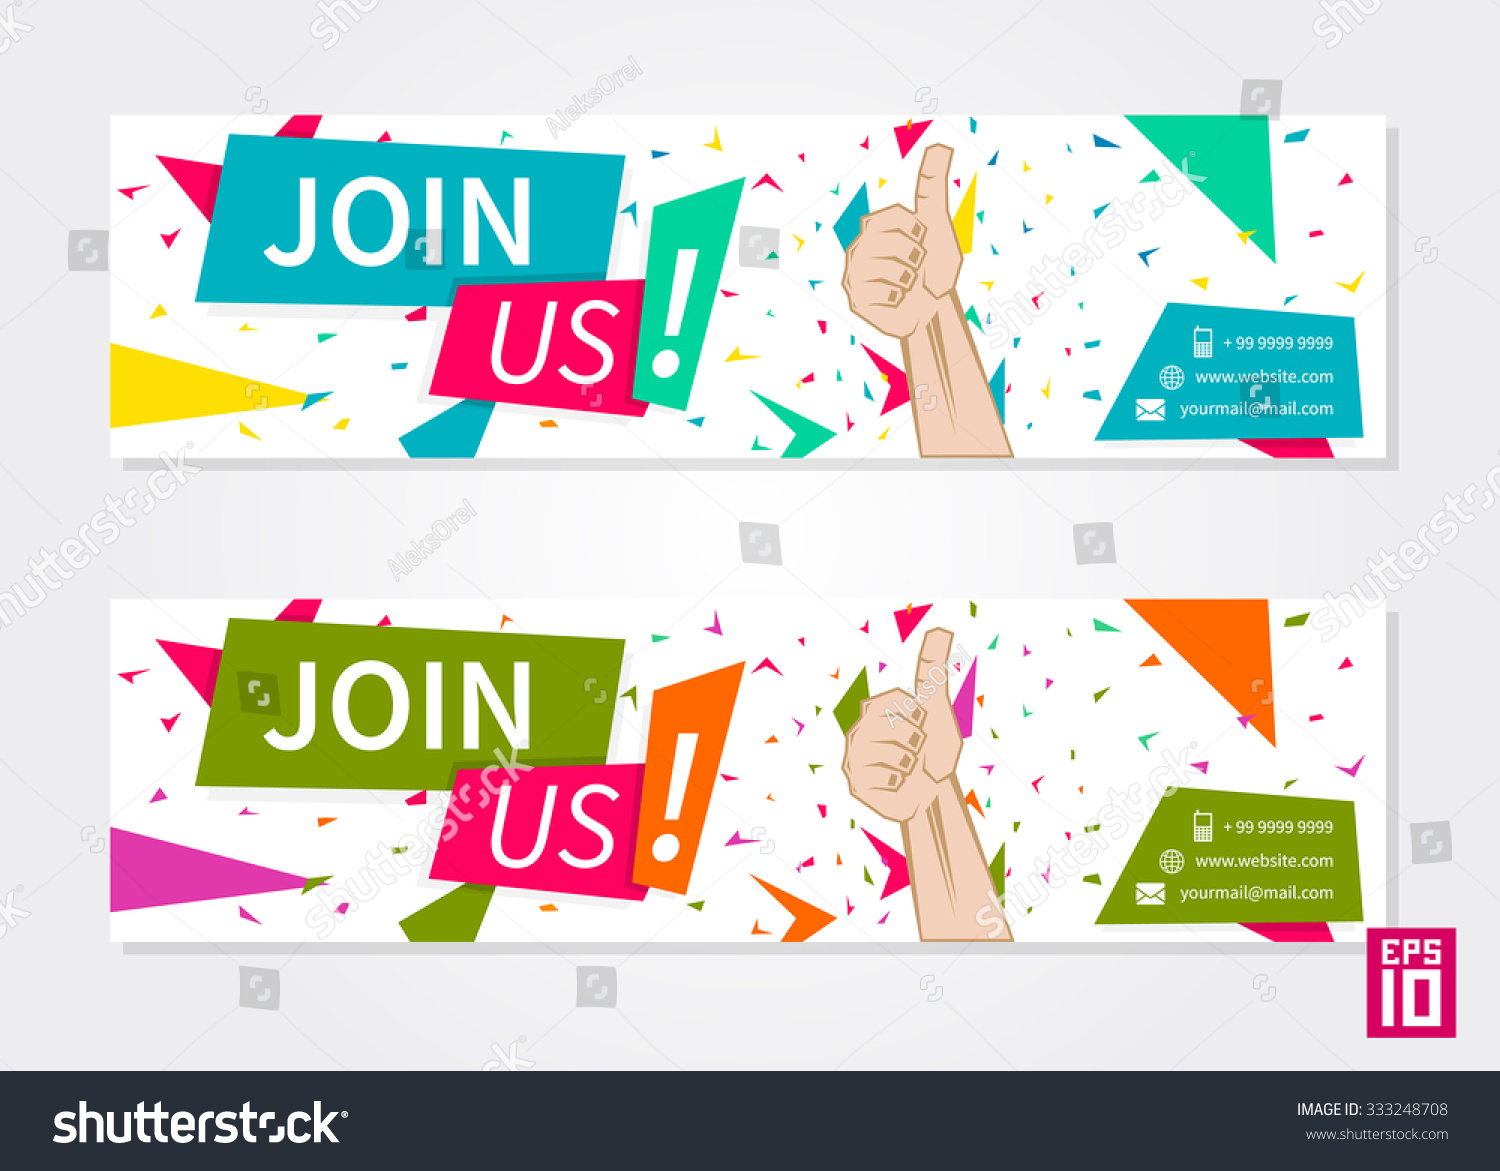 vector promotional banner join us advertisement stock vector vector promotional banner join us advertisement template